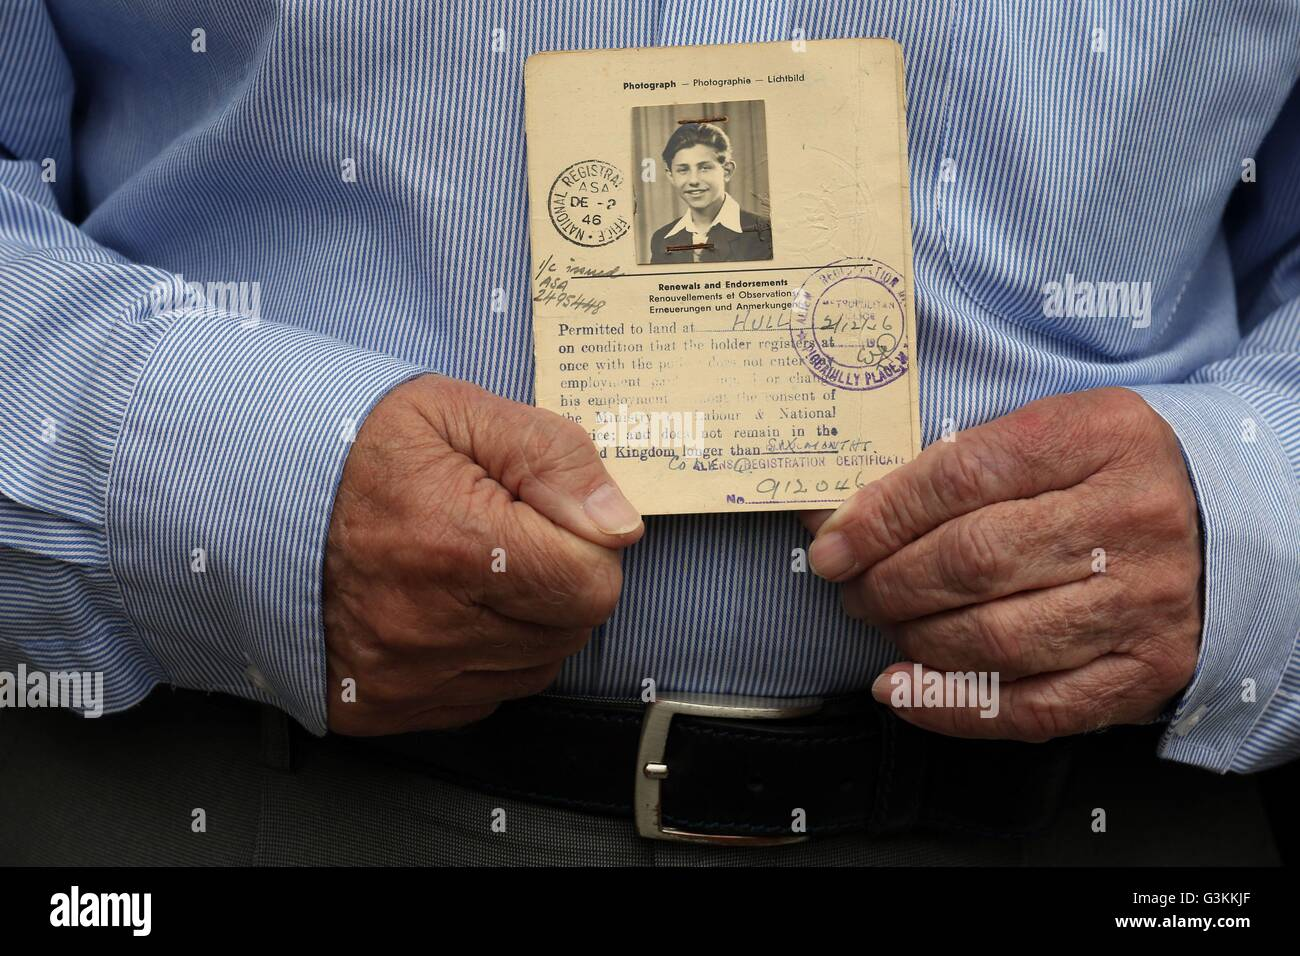 Previously unissued photo dated 25/5/2016 of Holocaust survivor Zigi Shipper holds his entry passport from 1946 - Stock Image